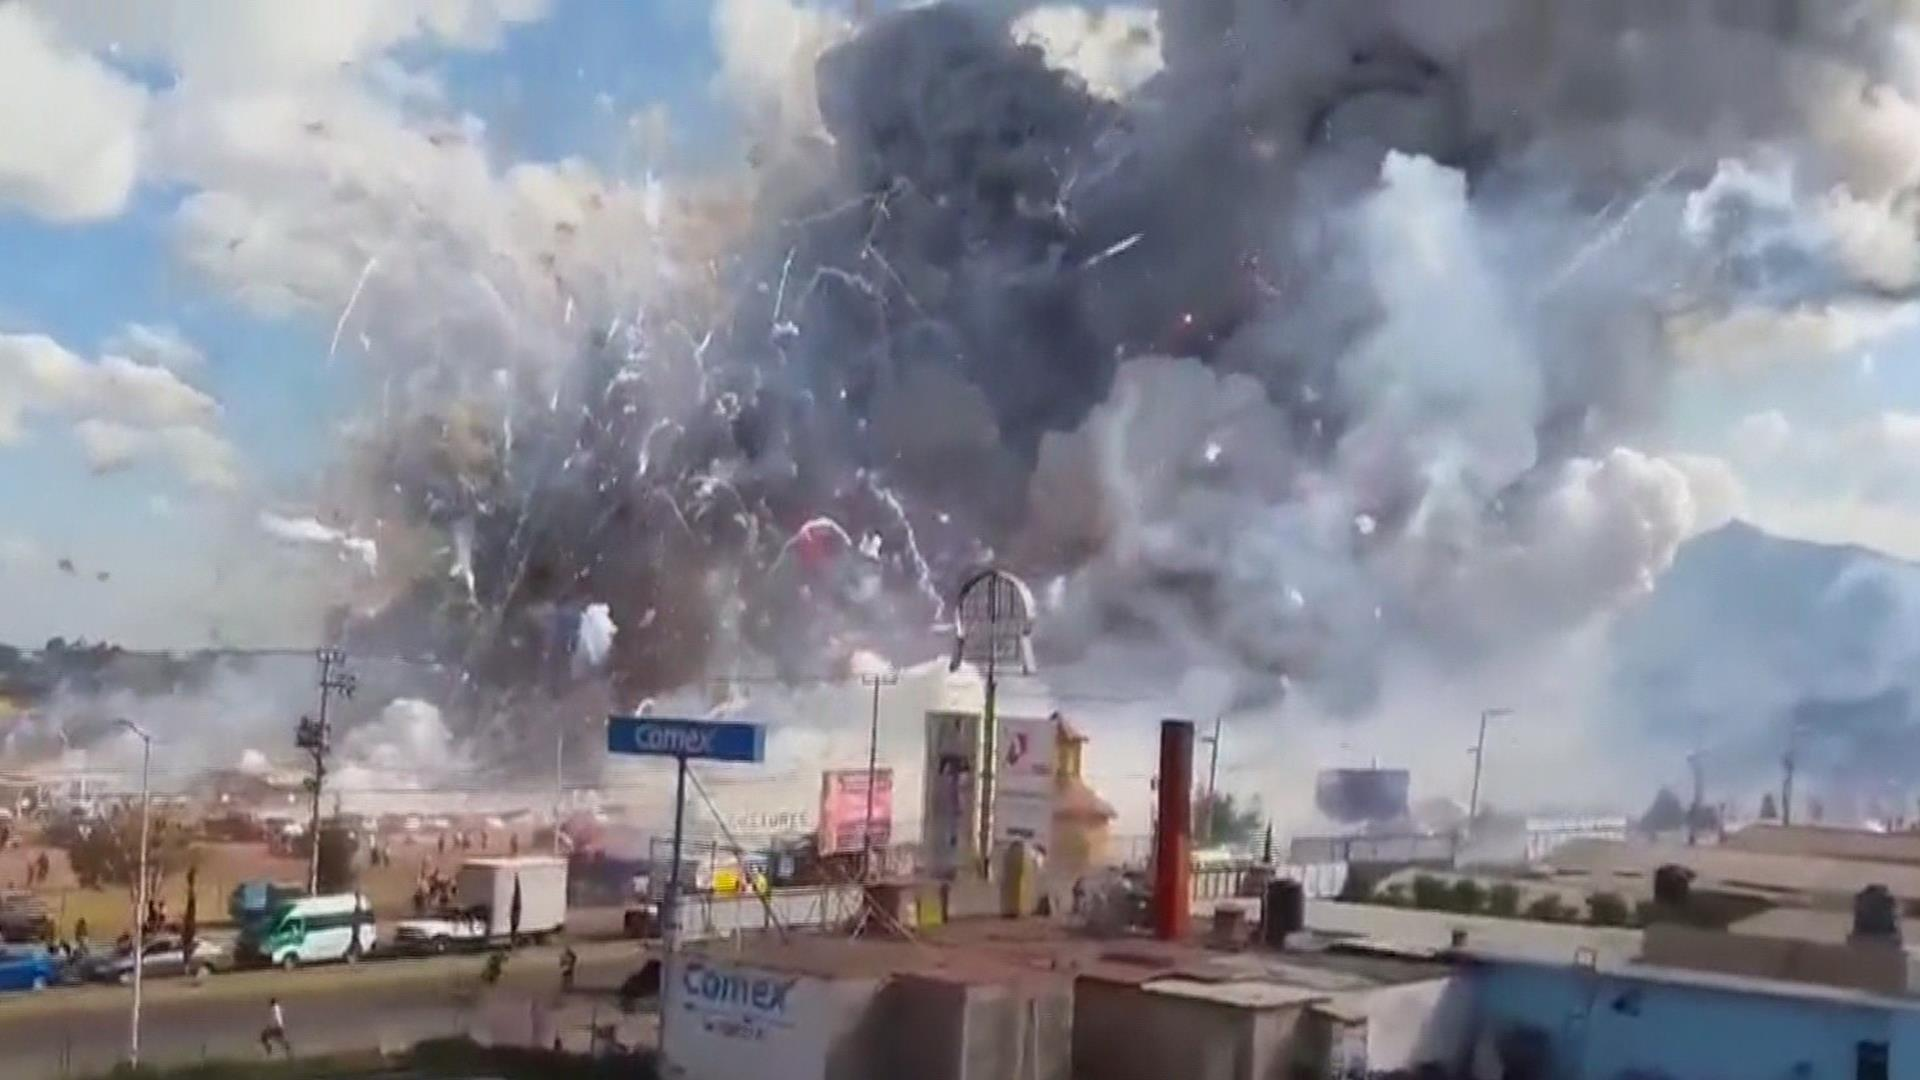 Mexico Fireworks Explosion At Least 31 Dead As Investigators Search For Cause